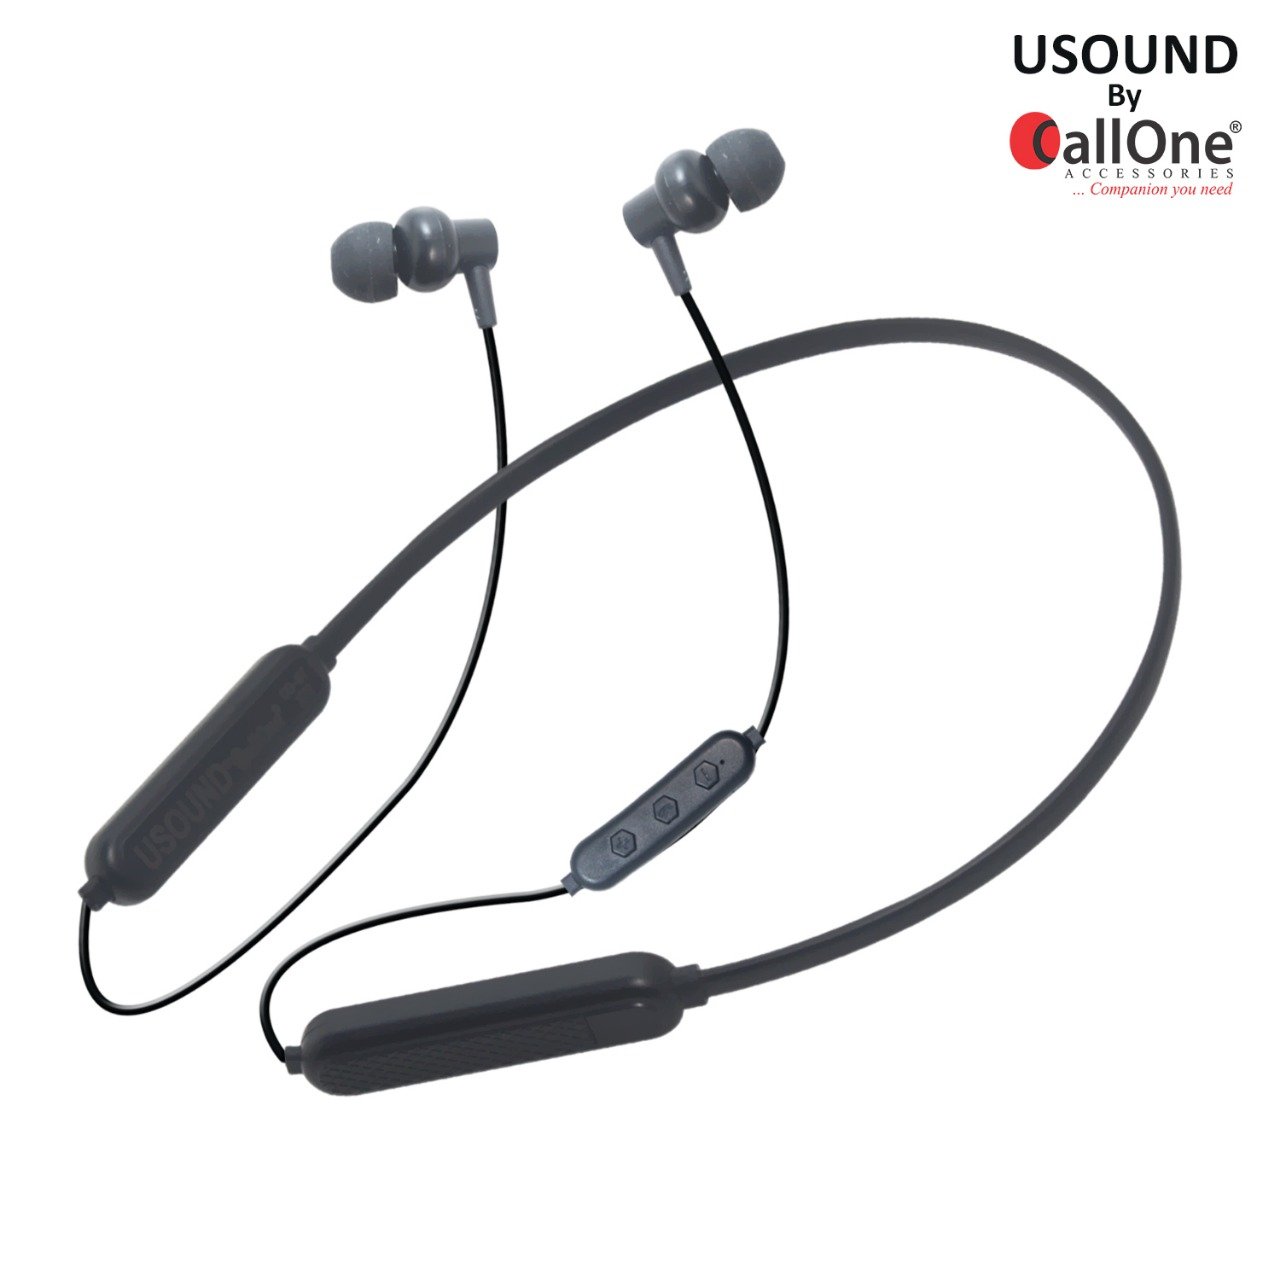 CallOne USound Wireless Bluetooth Headset COBT-X7S